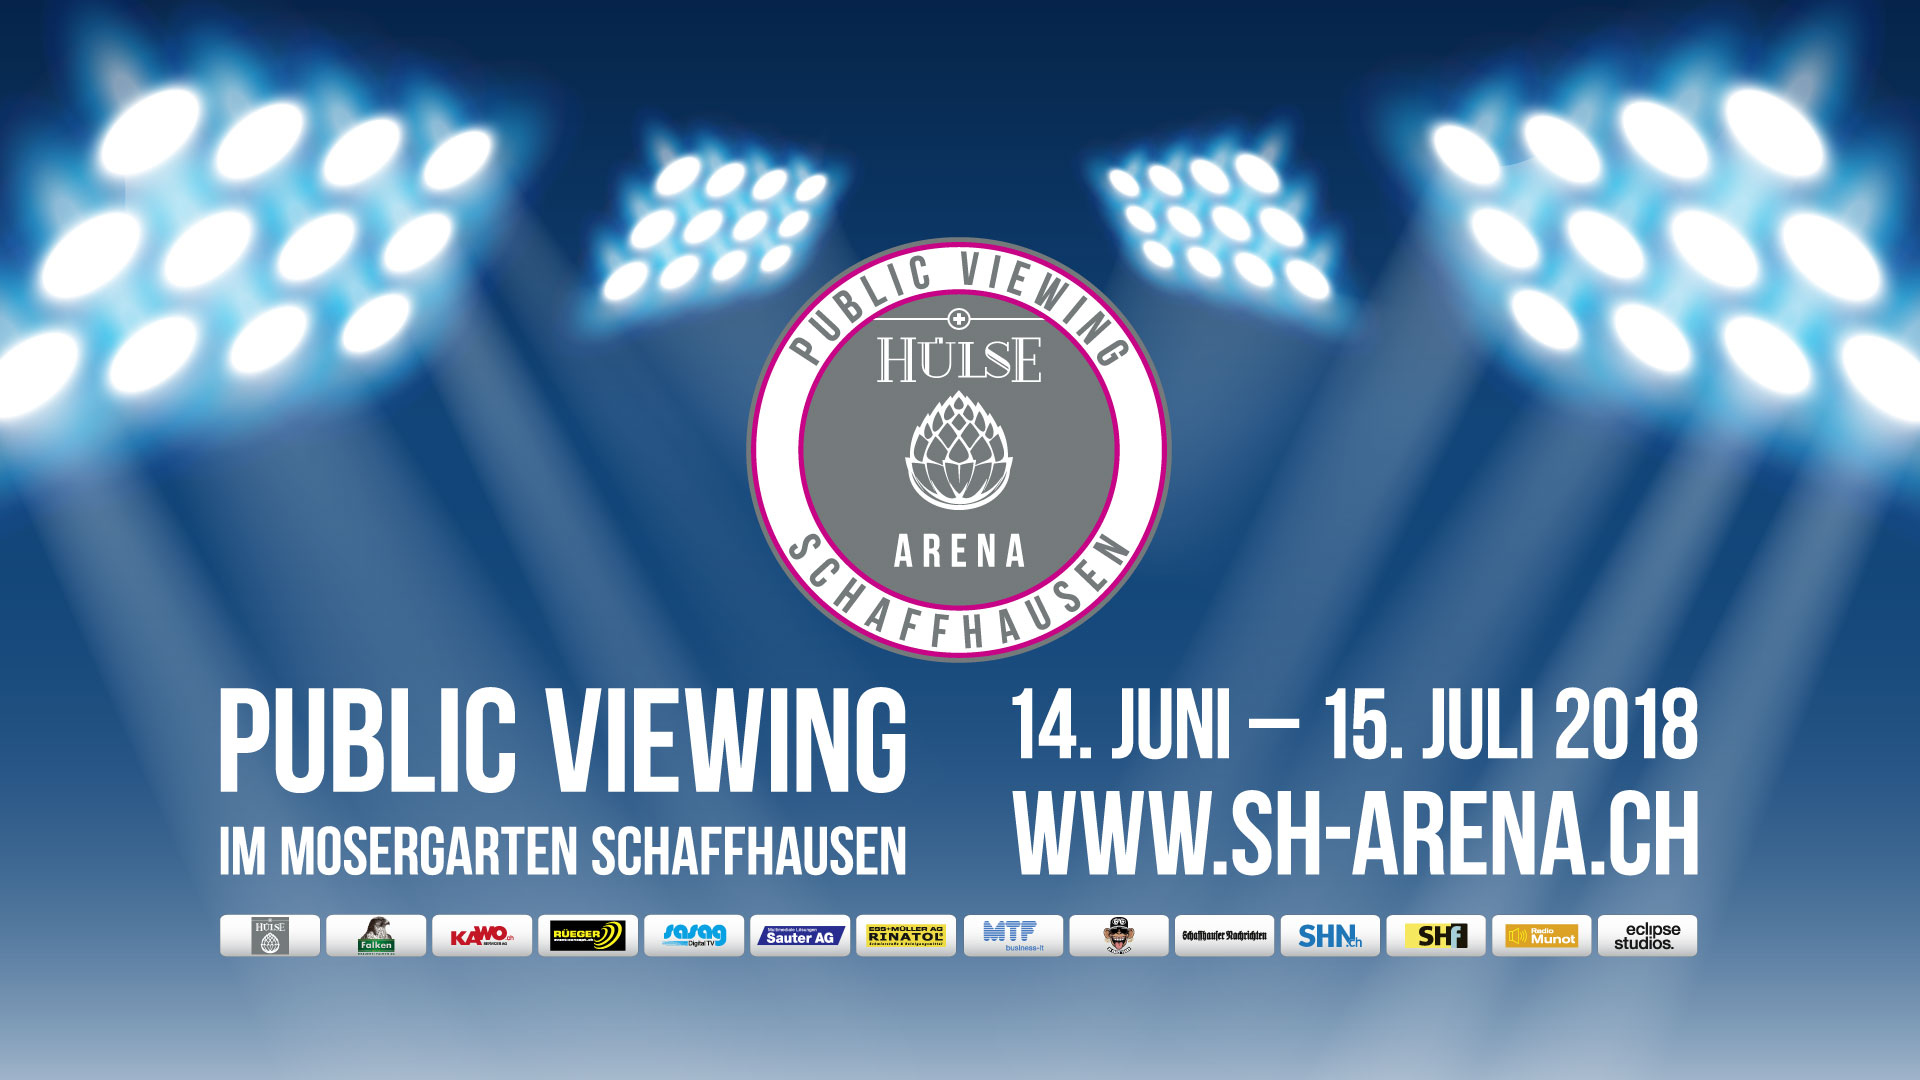 Public Viewing Schaffhausen, Hülse Arena